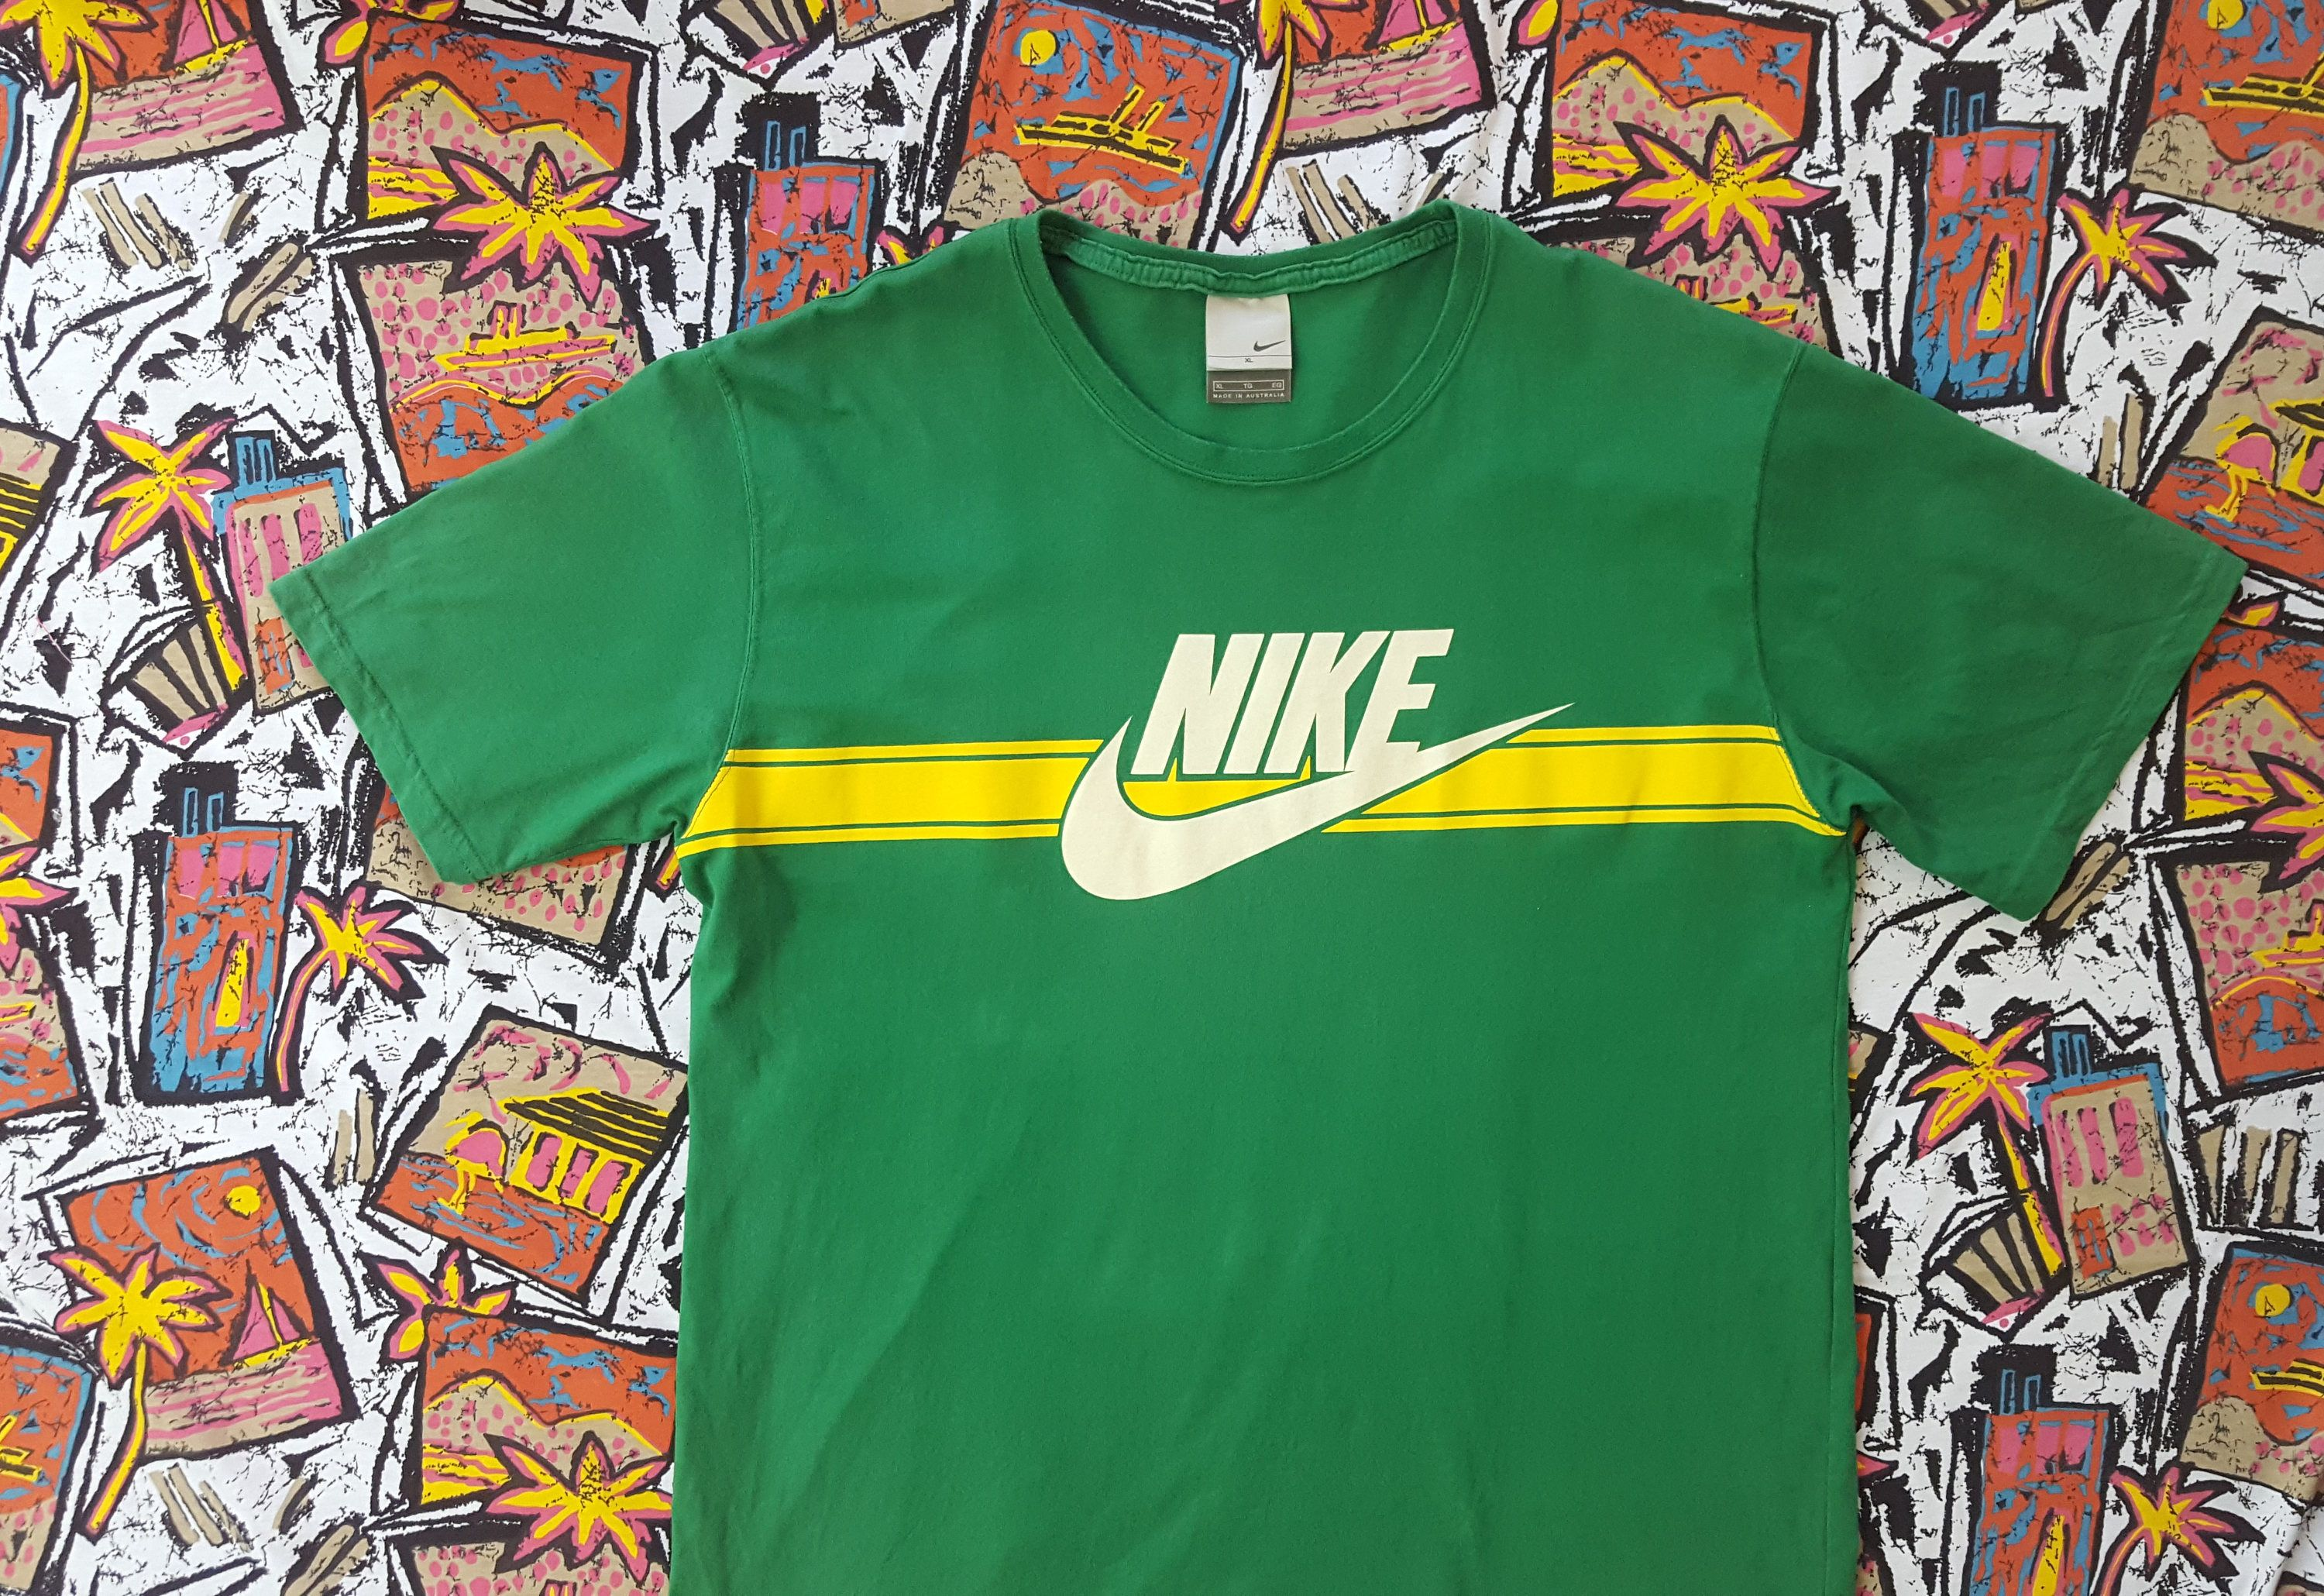 cc6667bfdf61e Vintage 90s Nike T Shirt Size XL Just Do It Swoosh Sporty Athletic ...